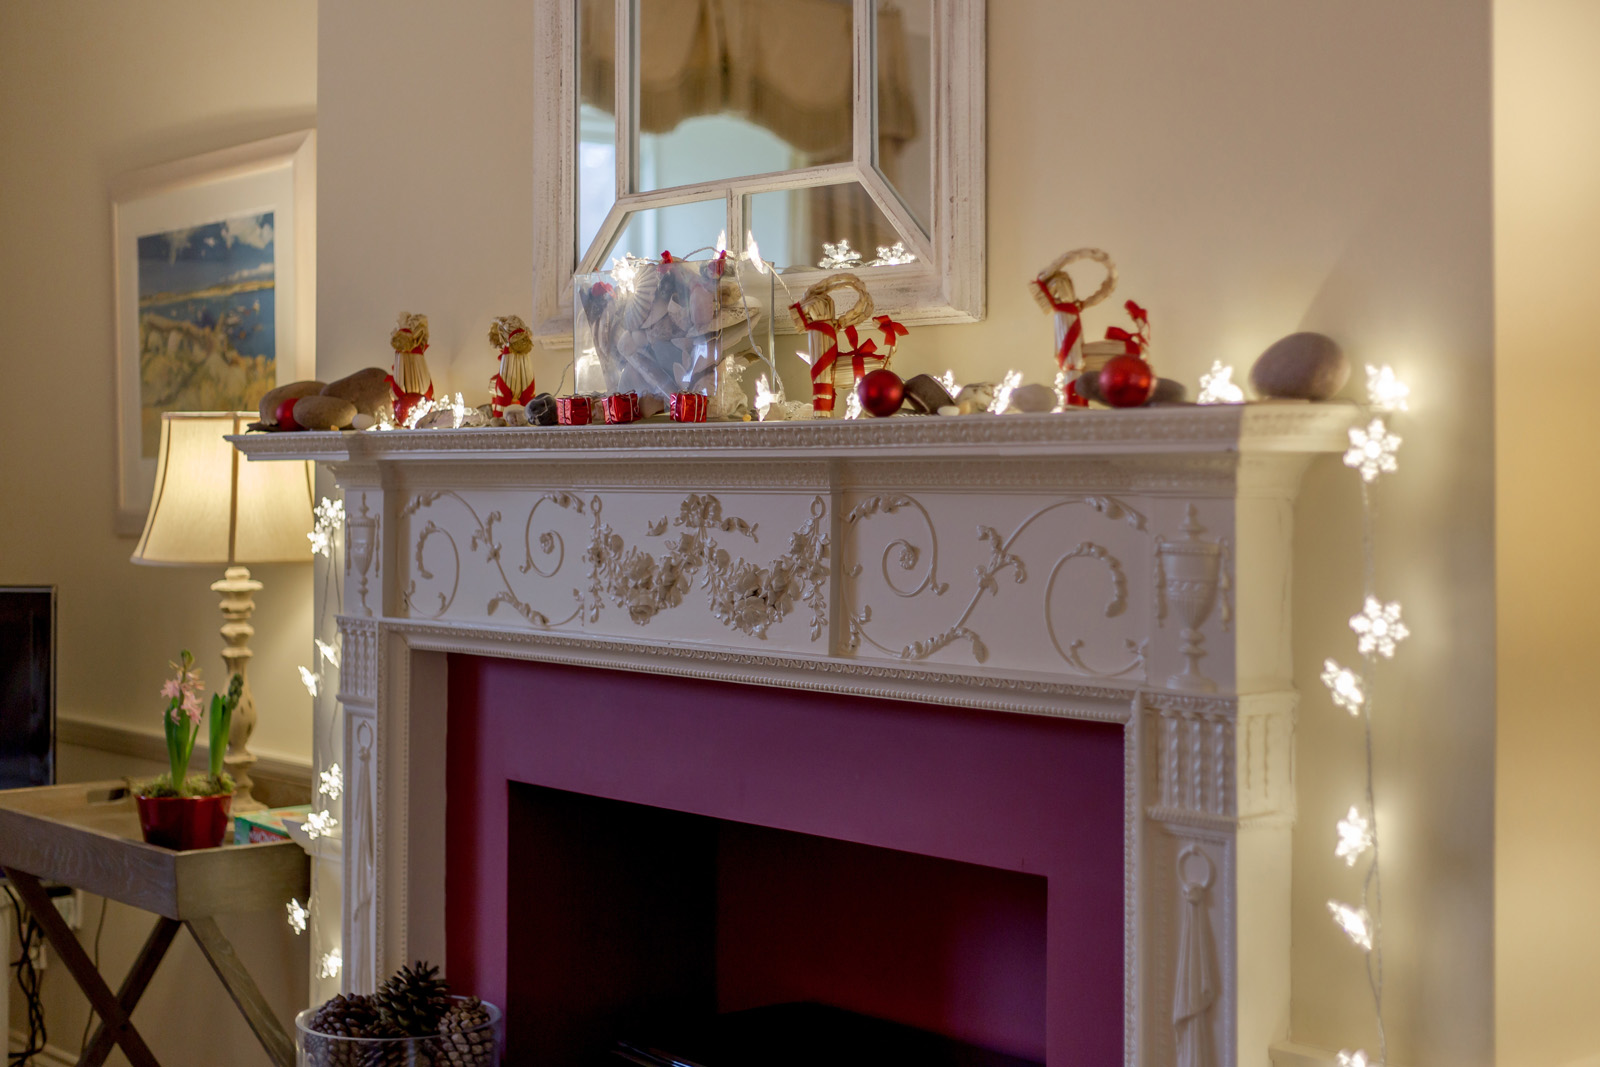 Self Catering Cottage Availability in Dumfries and Galloway for Christmas